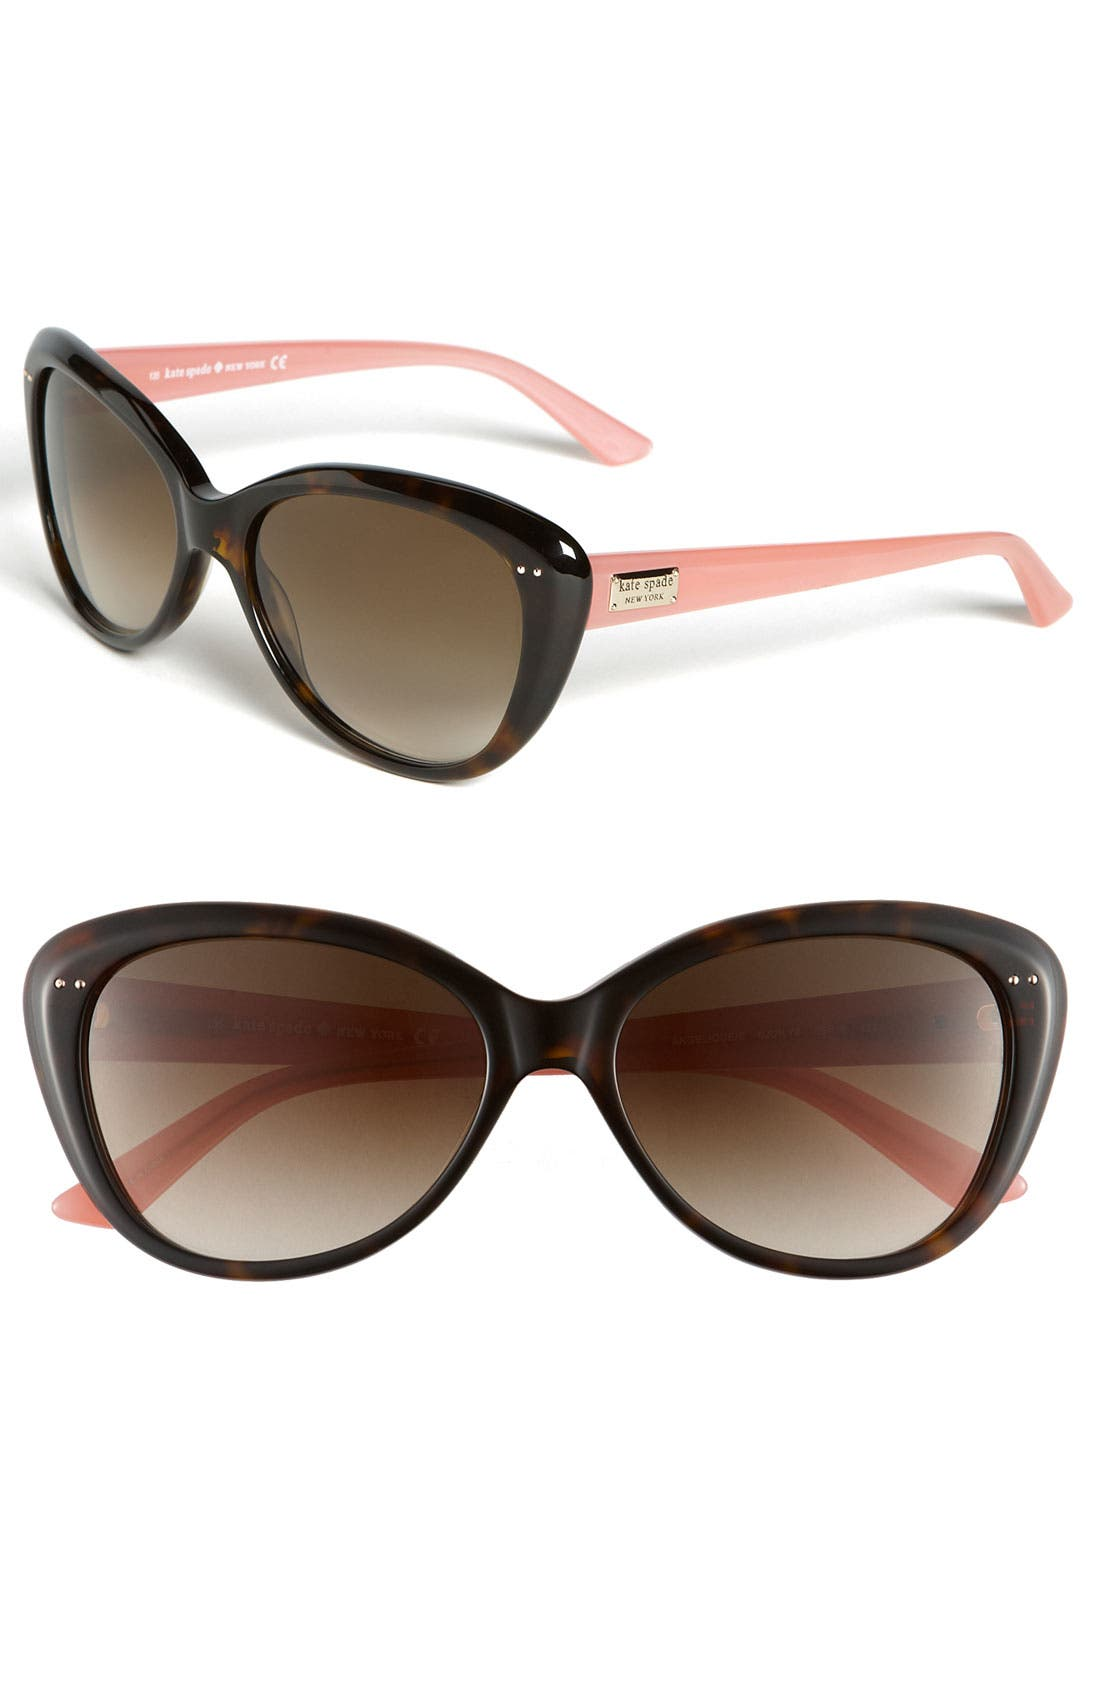 Main Image - kate spade new york 'angelique' 55mm retro sunglasses